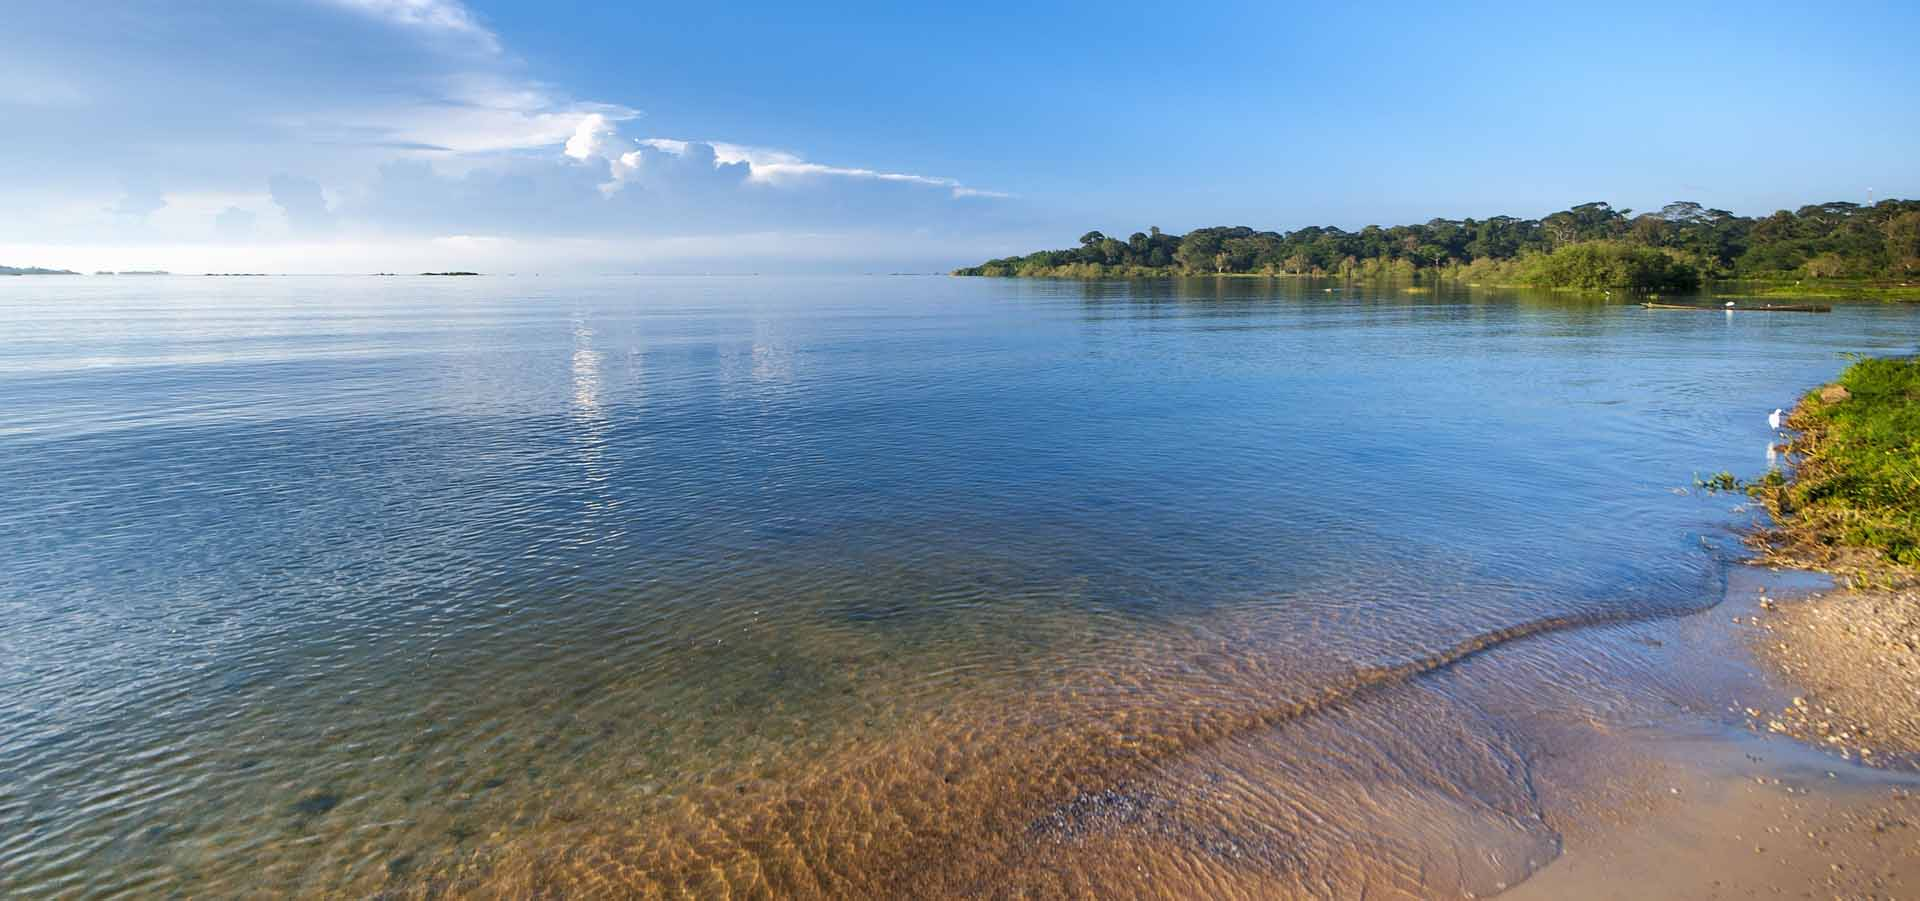 beaches lake Victoria Africa